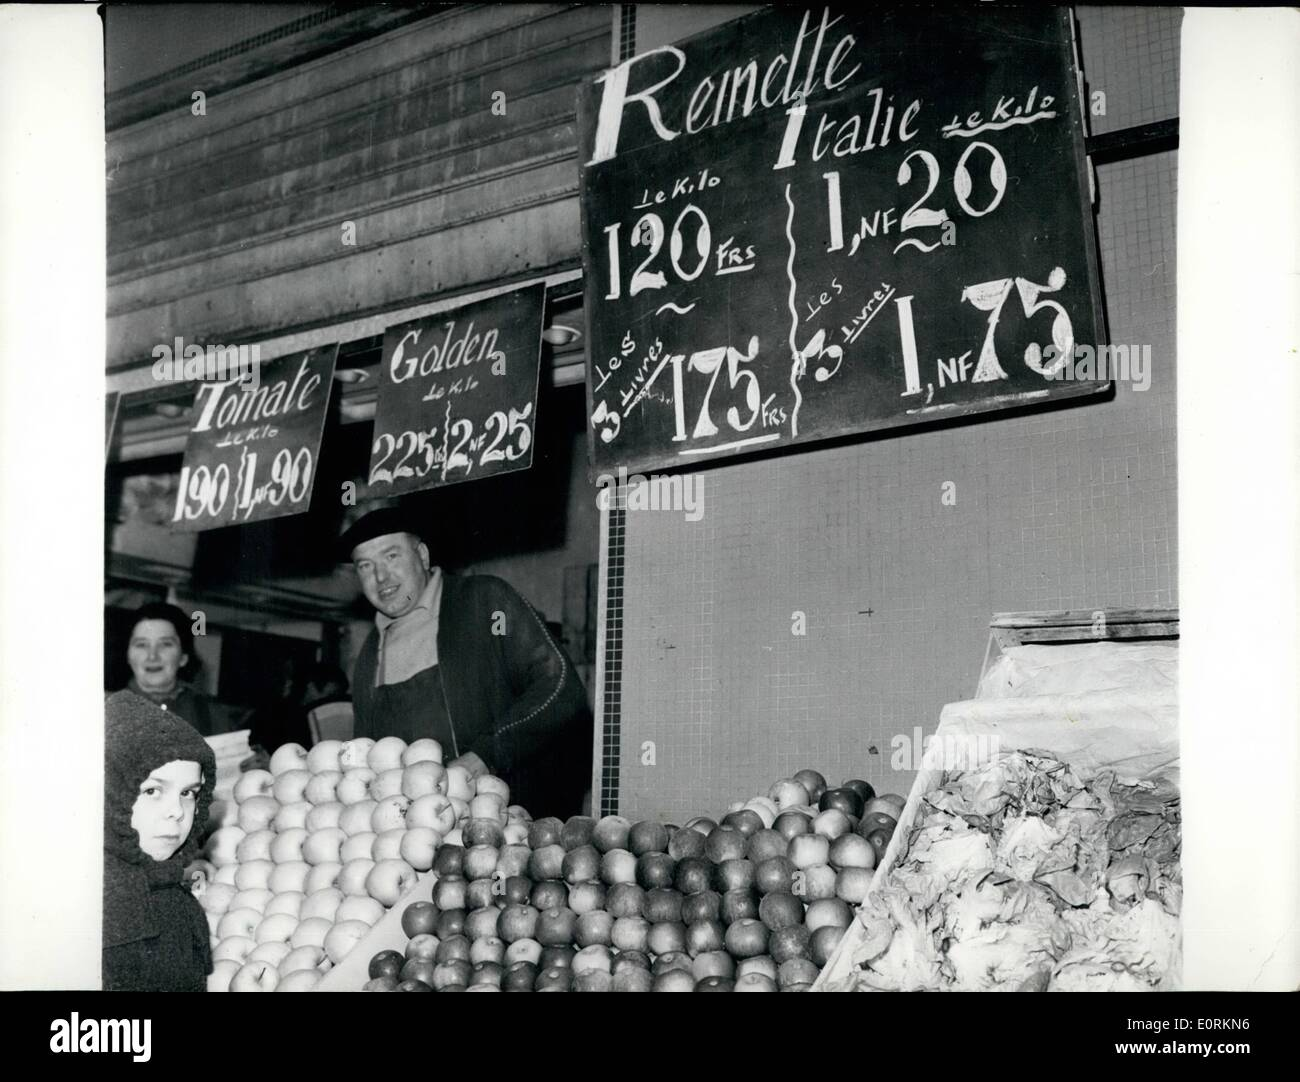 Jan. 01, 1960 - 'Heavy Franc'' becomes effective: The New ''Heavy Franc'' has become effective in France from January the 1st. all prices must now be quoted accordingly. The new Banknotes and coins will be put int circulation he progressively during the year. photo shows Paris shops displaying labels with indicating prices in old and new francs (the new heavy France is worth loo old ''light Francs' - Stock Image